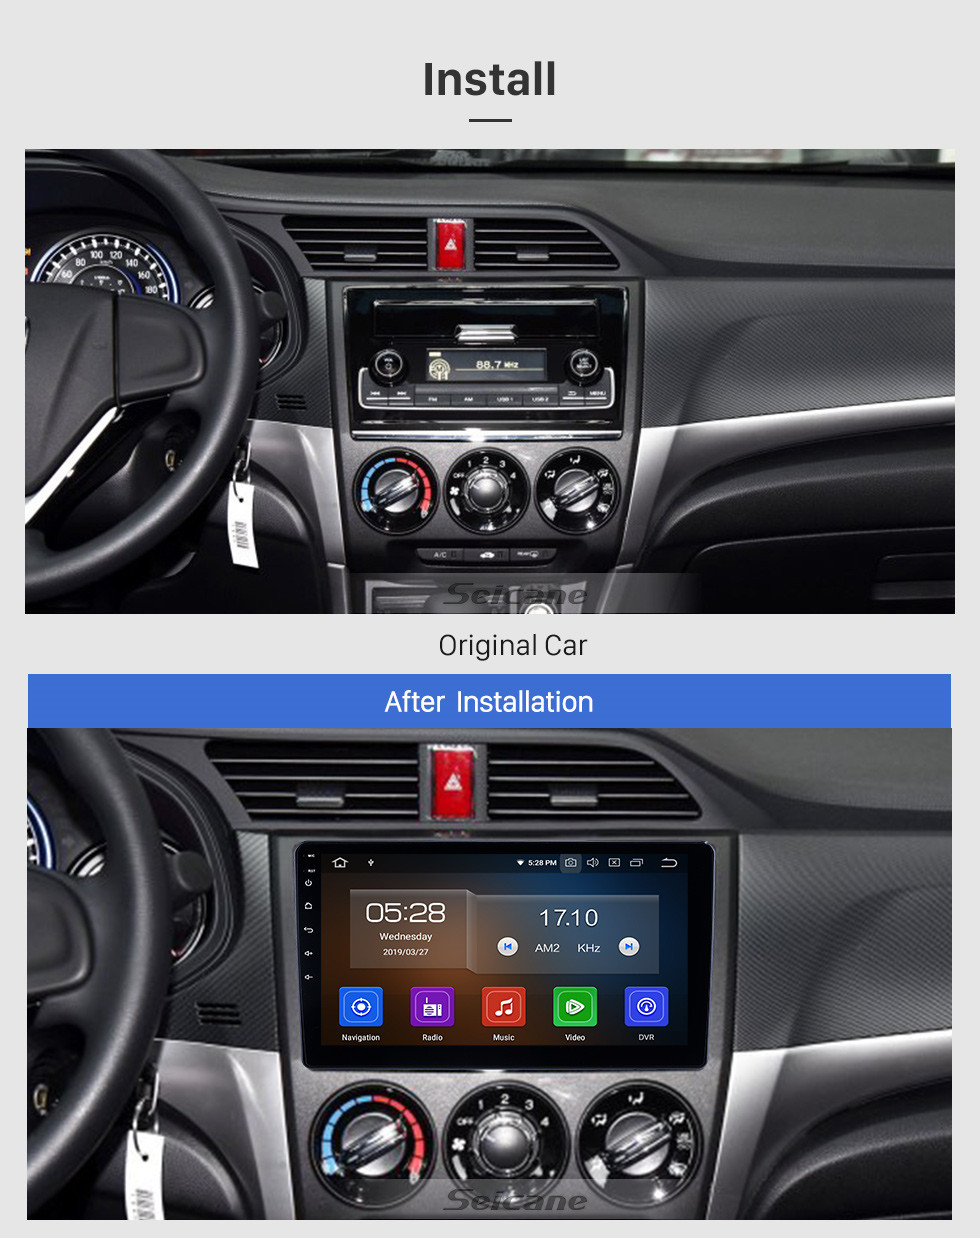 Seicane 10,1 pouces 2018-2019 Honda Crider Android 9.0 Navigation Radio Radio Bluetooth HD Écran tactile AUX USB WIFI Support Carplay OBD2 1080P